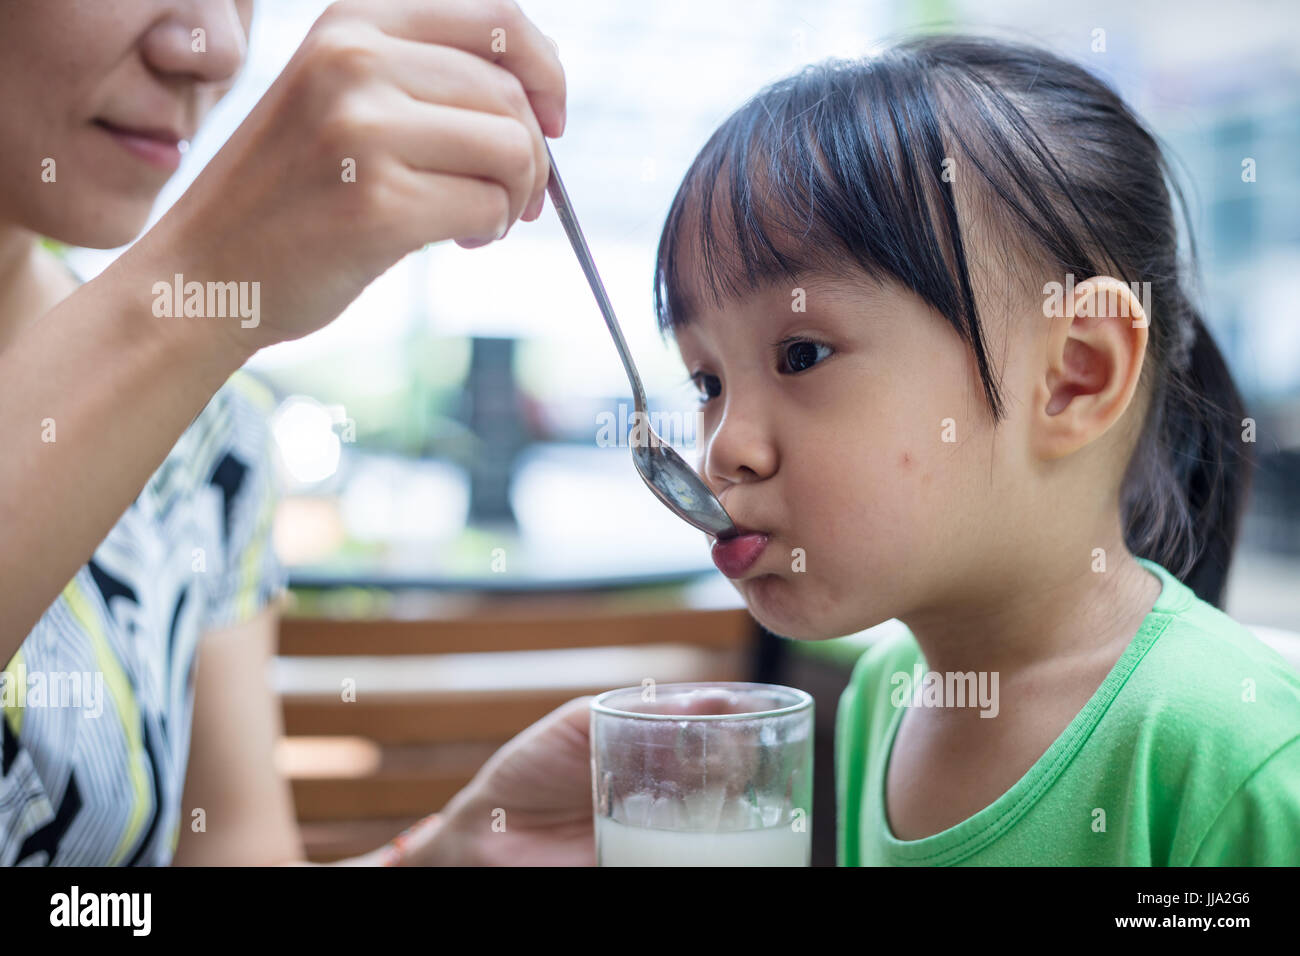 Chinois asiatique peu girl drinking beverage at outdoor restaurant Photo Stock